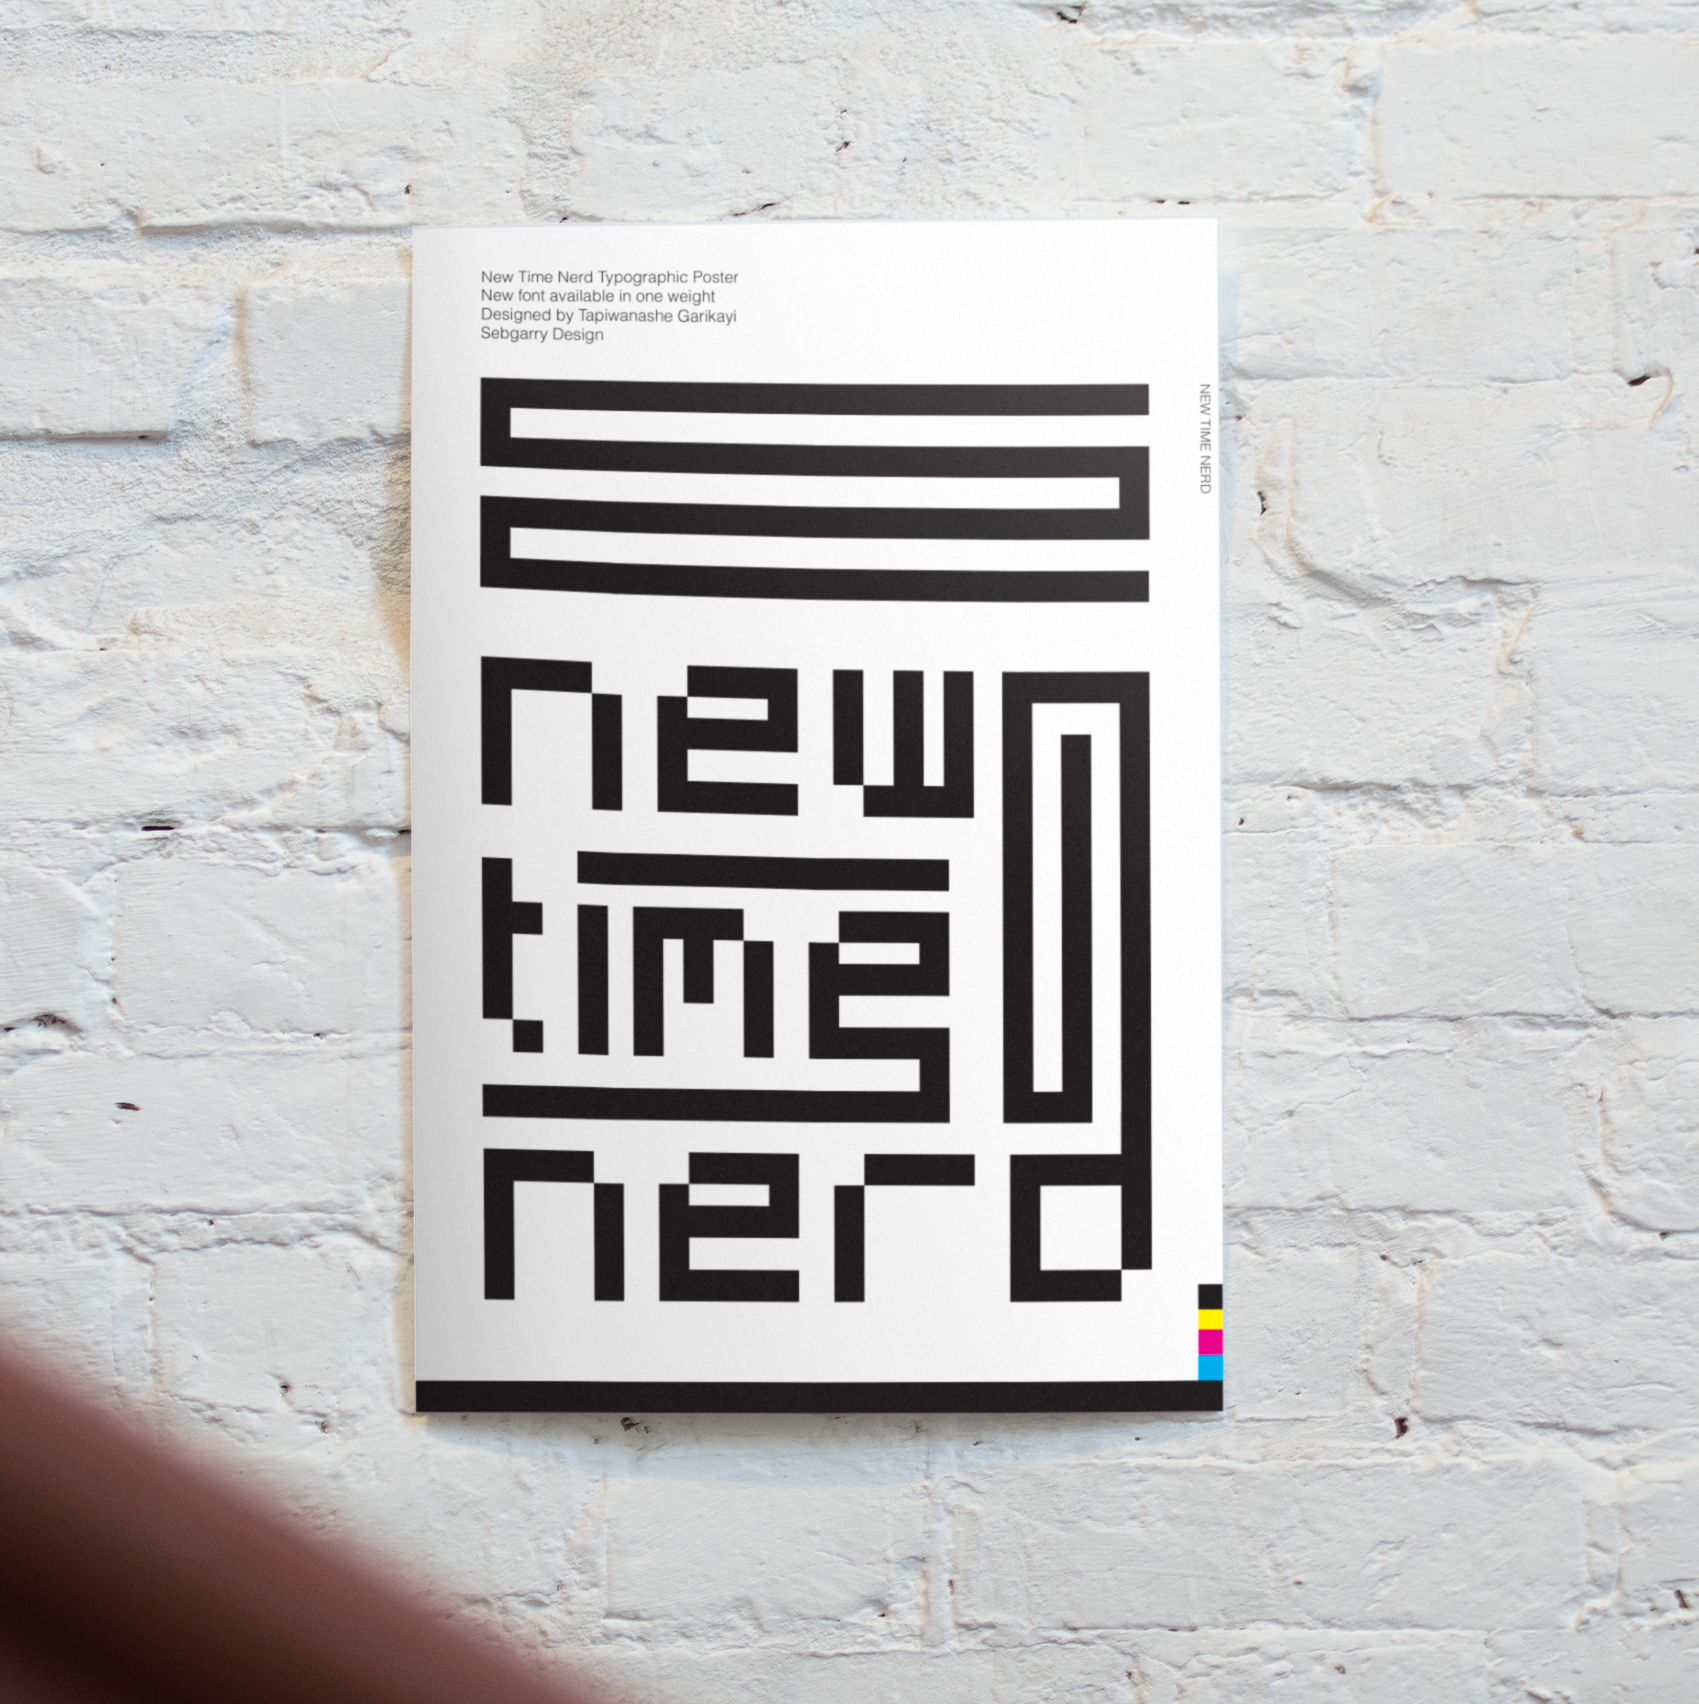 New Time Nerd Free Font